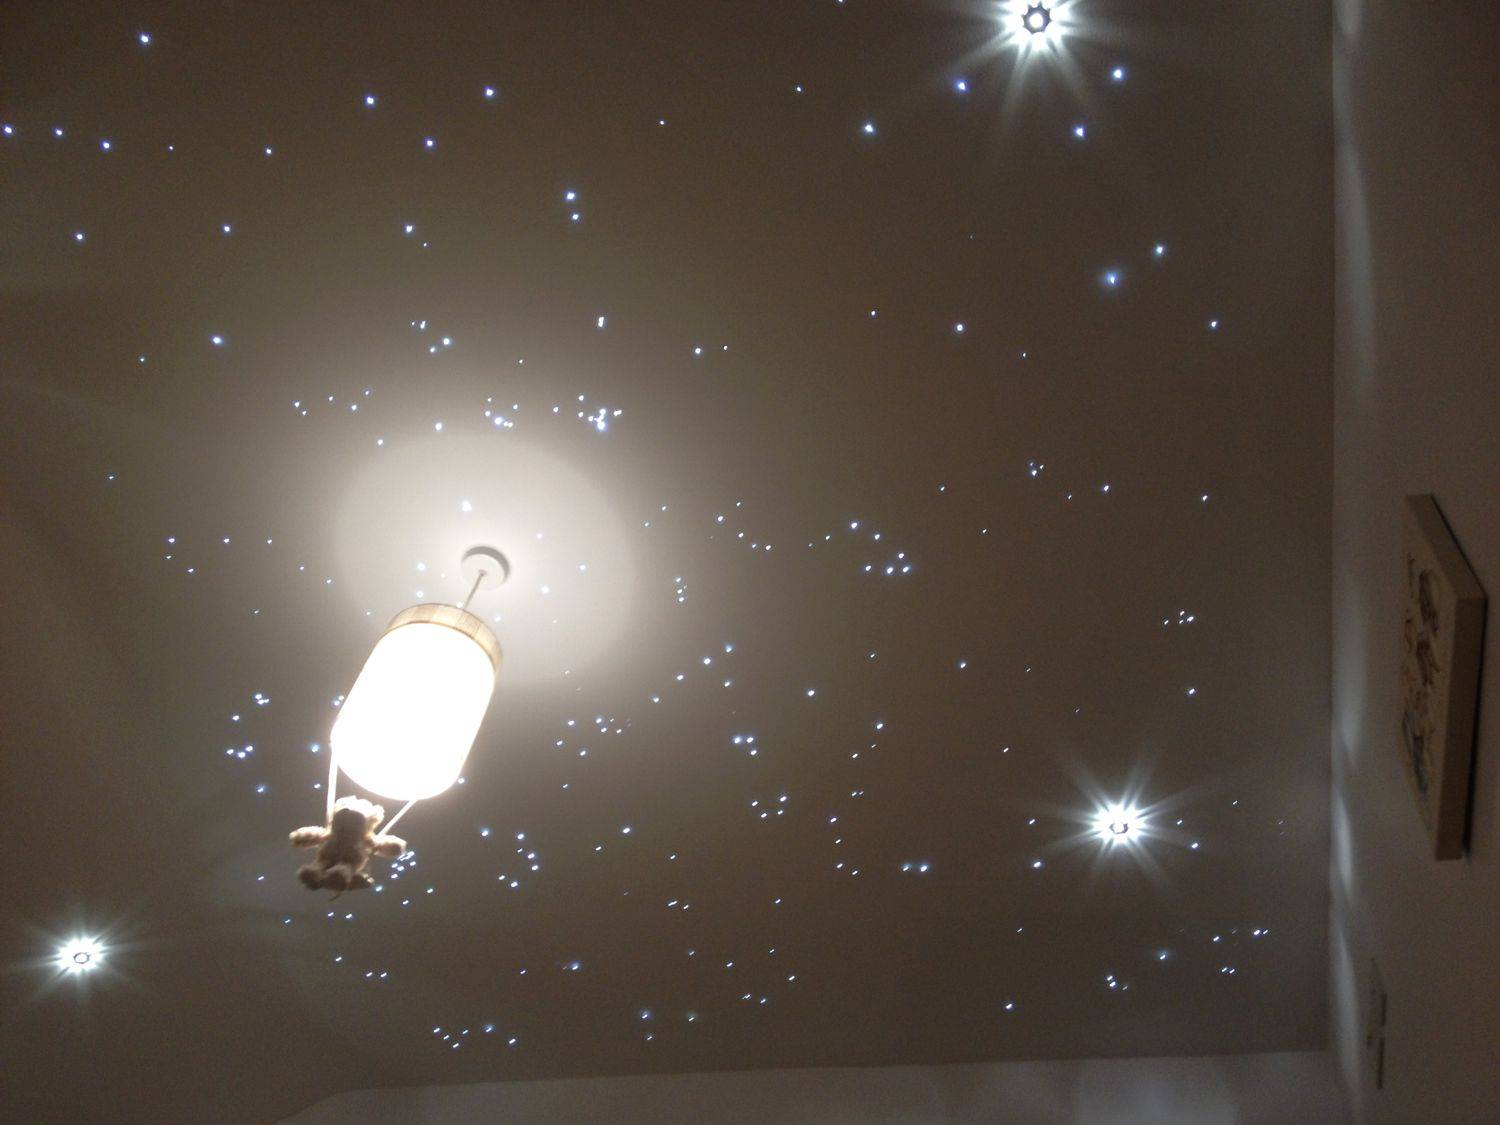 Starscape galaxy fiber optic ceiling tile system for home theaters